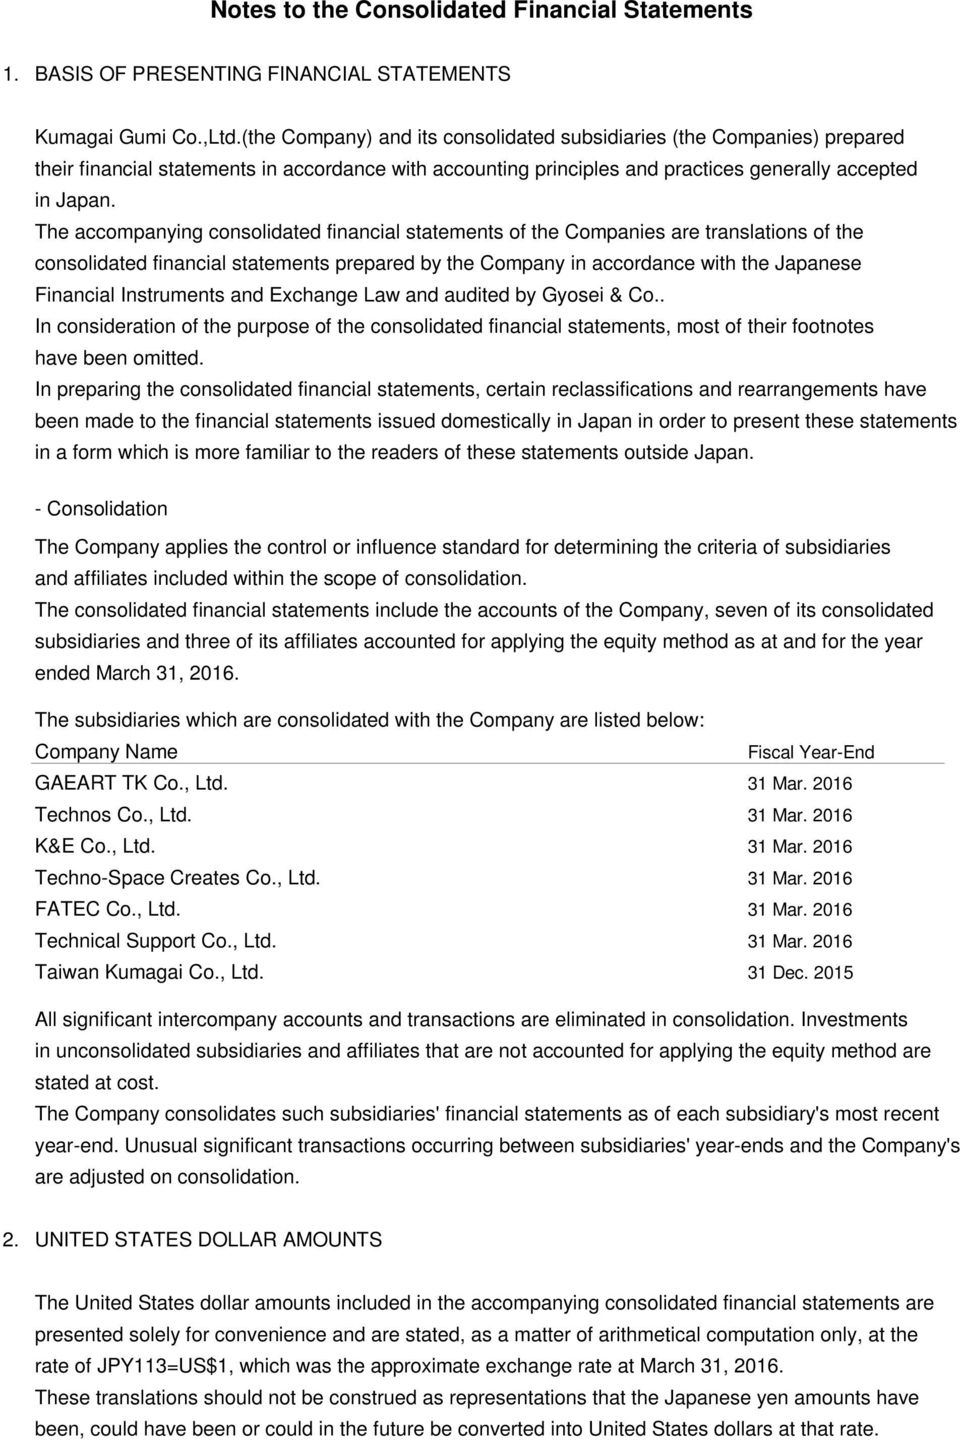 The accompanying consolidated financial statements of the Companies are translations of the consolidated financial statements prepared by the Company in accordance with the Japanese Financial